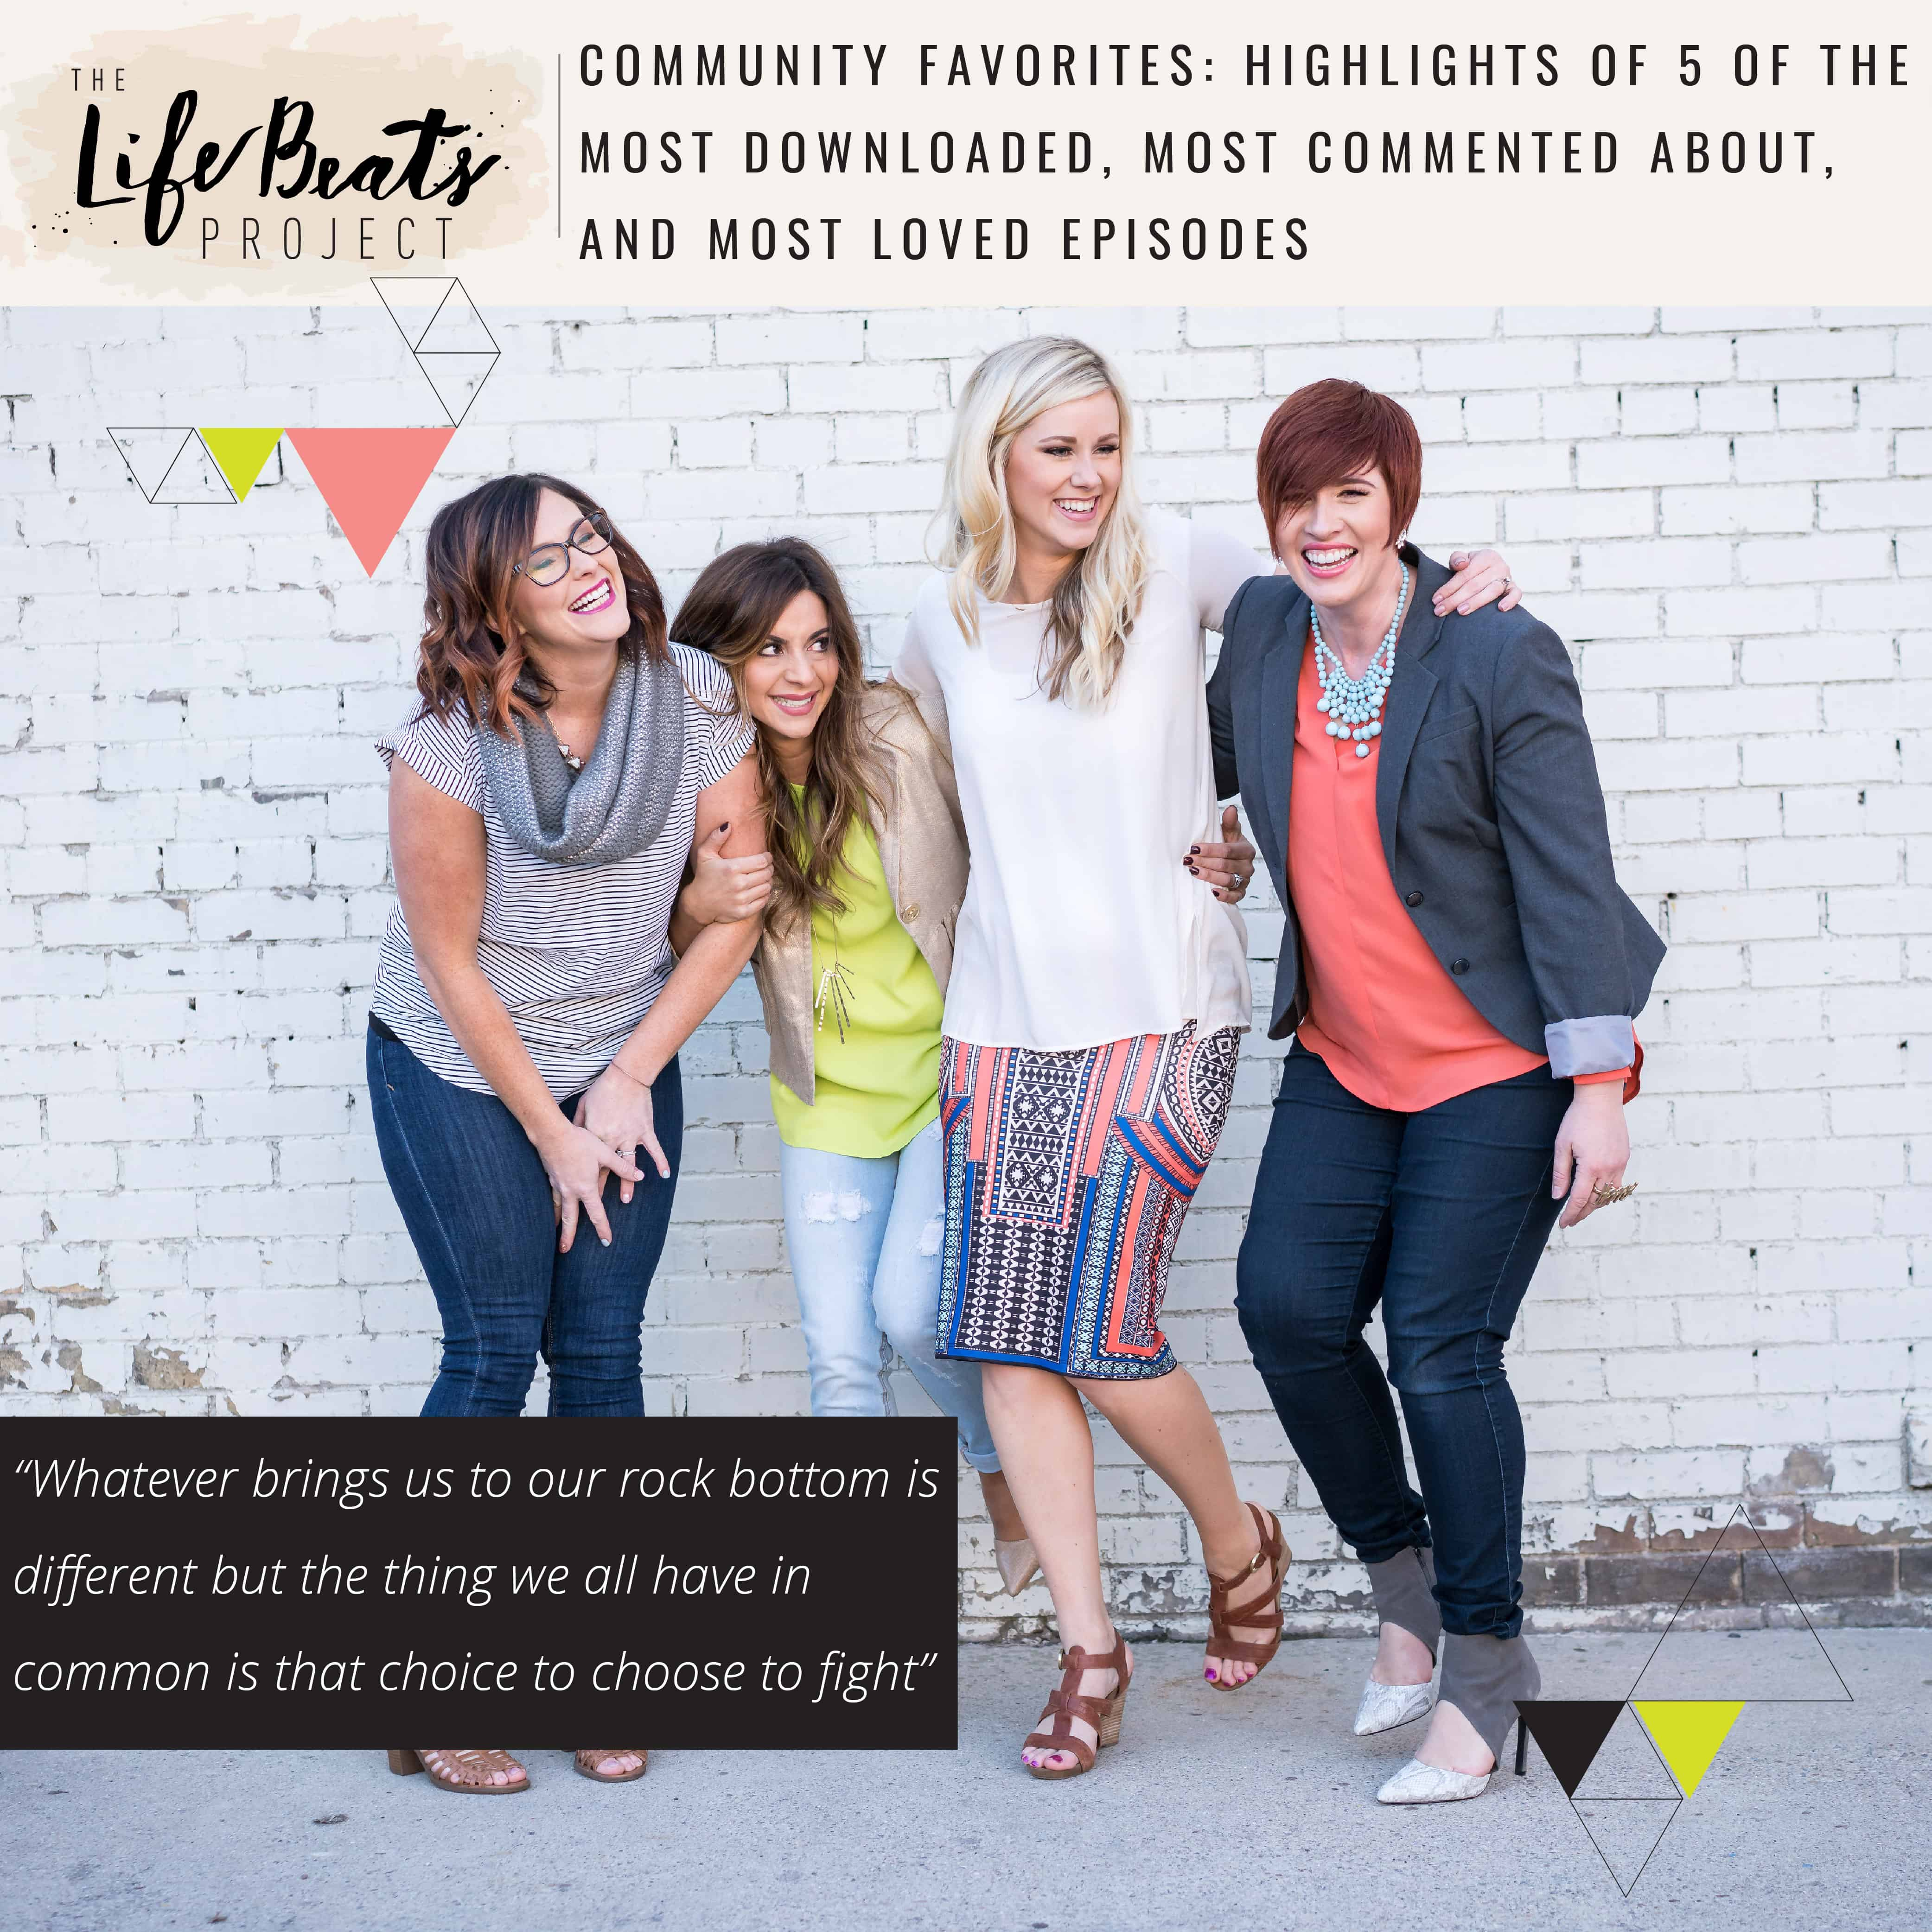 top podcasts most downloaded podcast episodes community favorites The LifeBeats Project Bre Lasley Fight Like Girls Hero Bands O.U.R.